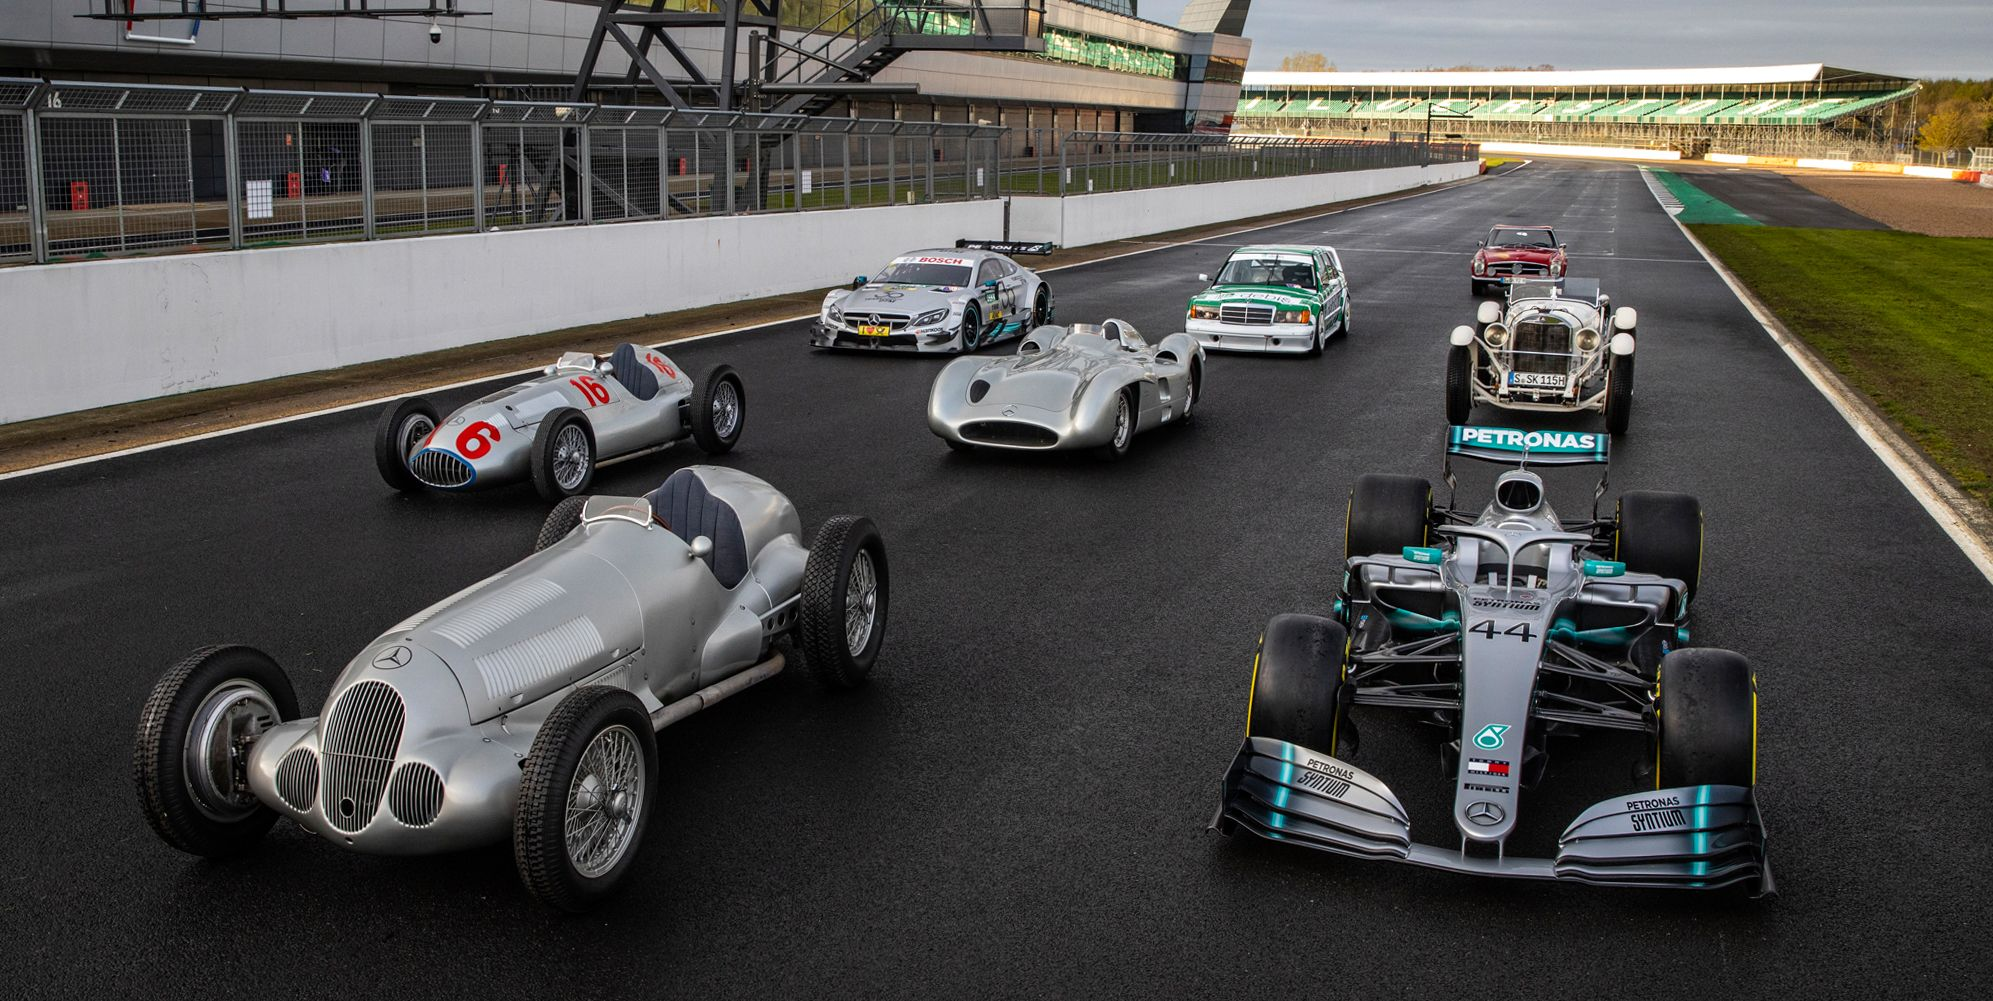 Mercedes-Benz Rolls Out All its Greatest Racing Cars to Celebrate 125 Years in Motorsports